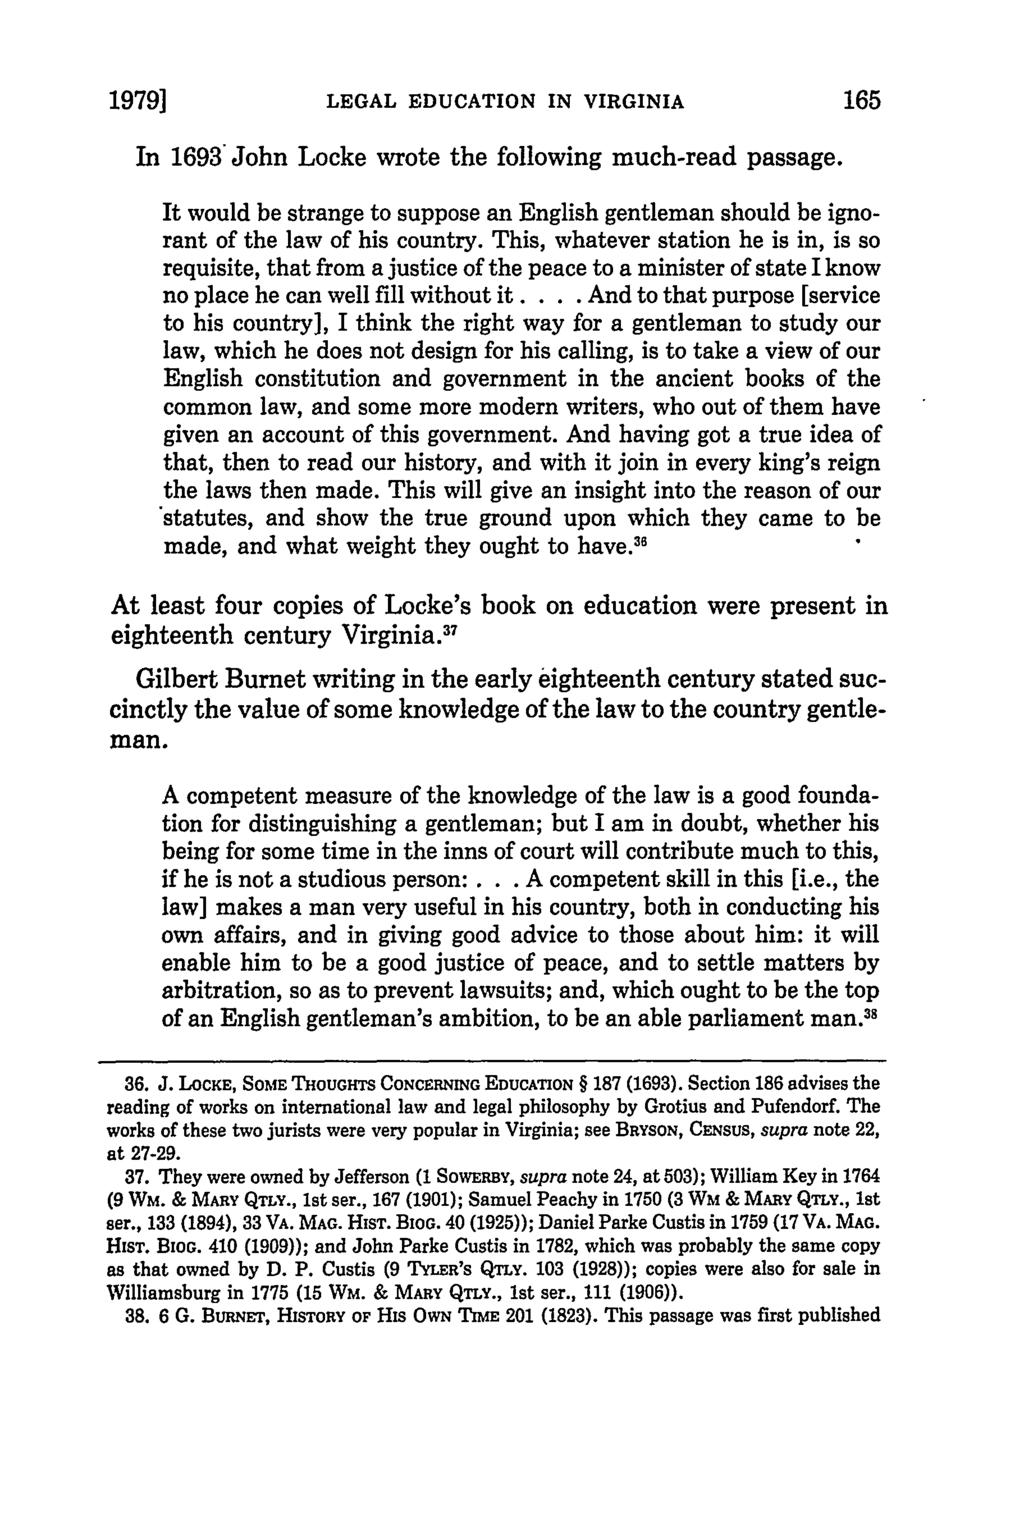 1979] LEGAL EDUCATION IN VIRGINIA In 1693 John Locke wrote the following much-read passage. It would be strange to suppose an English gentleman should be ignorant of the law of his country.